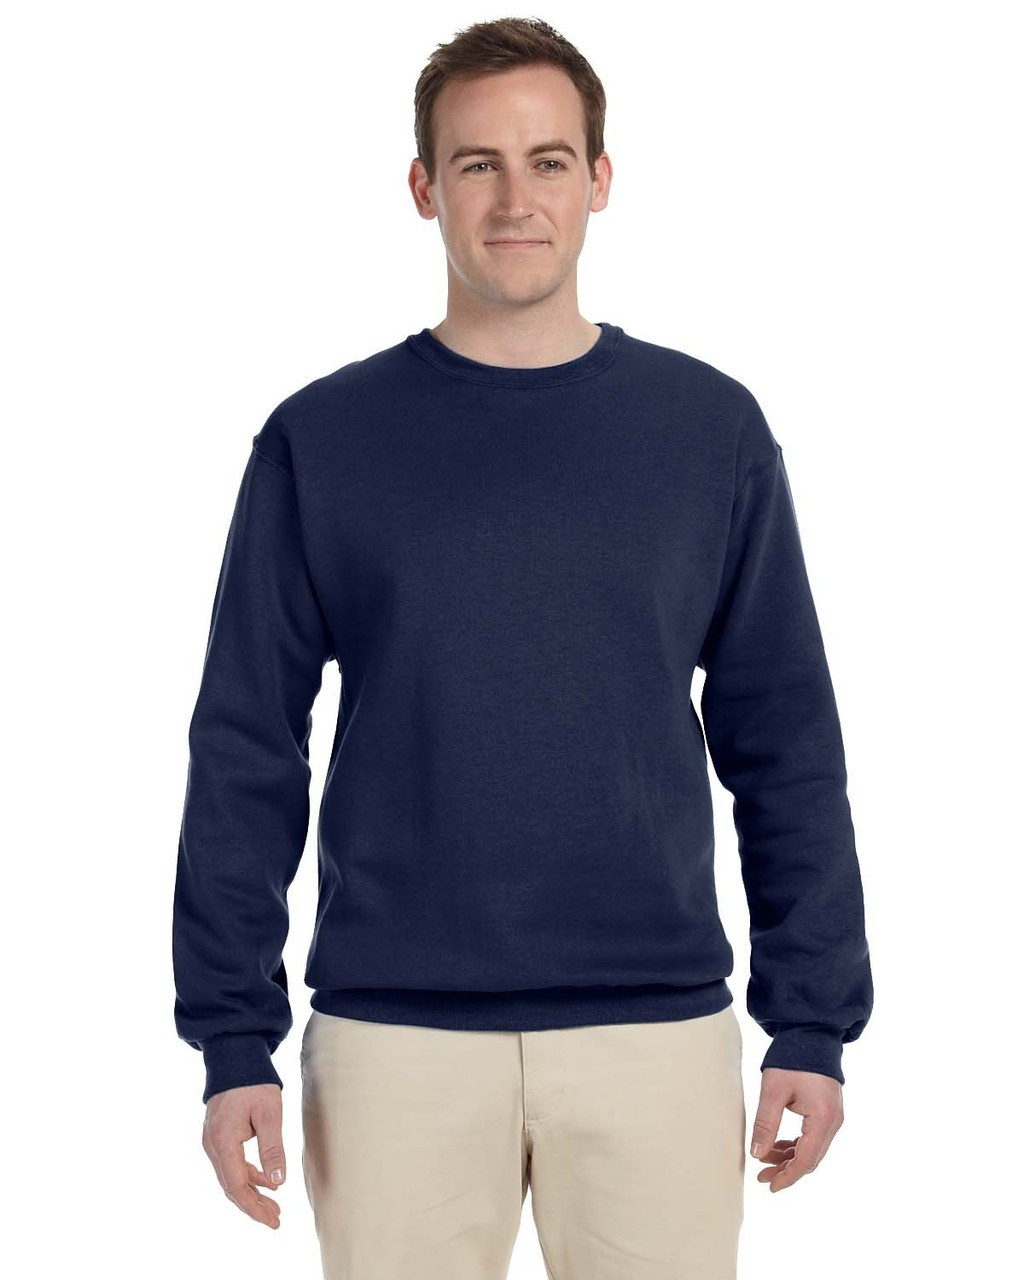 J. Navy 82300 Fruit of the Loom Supercotton™ Fleece Crew Sweater | Blankclothing.ca